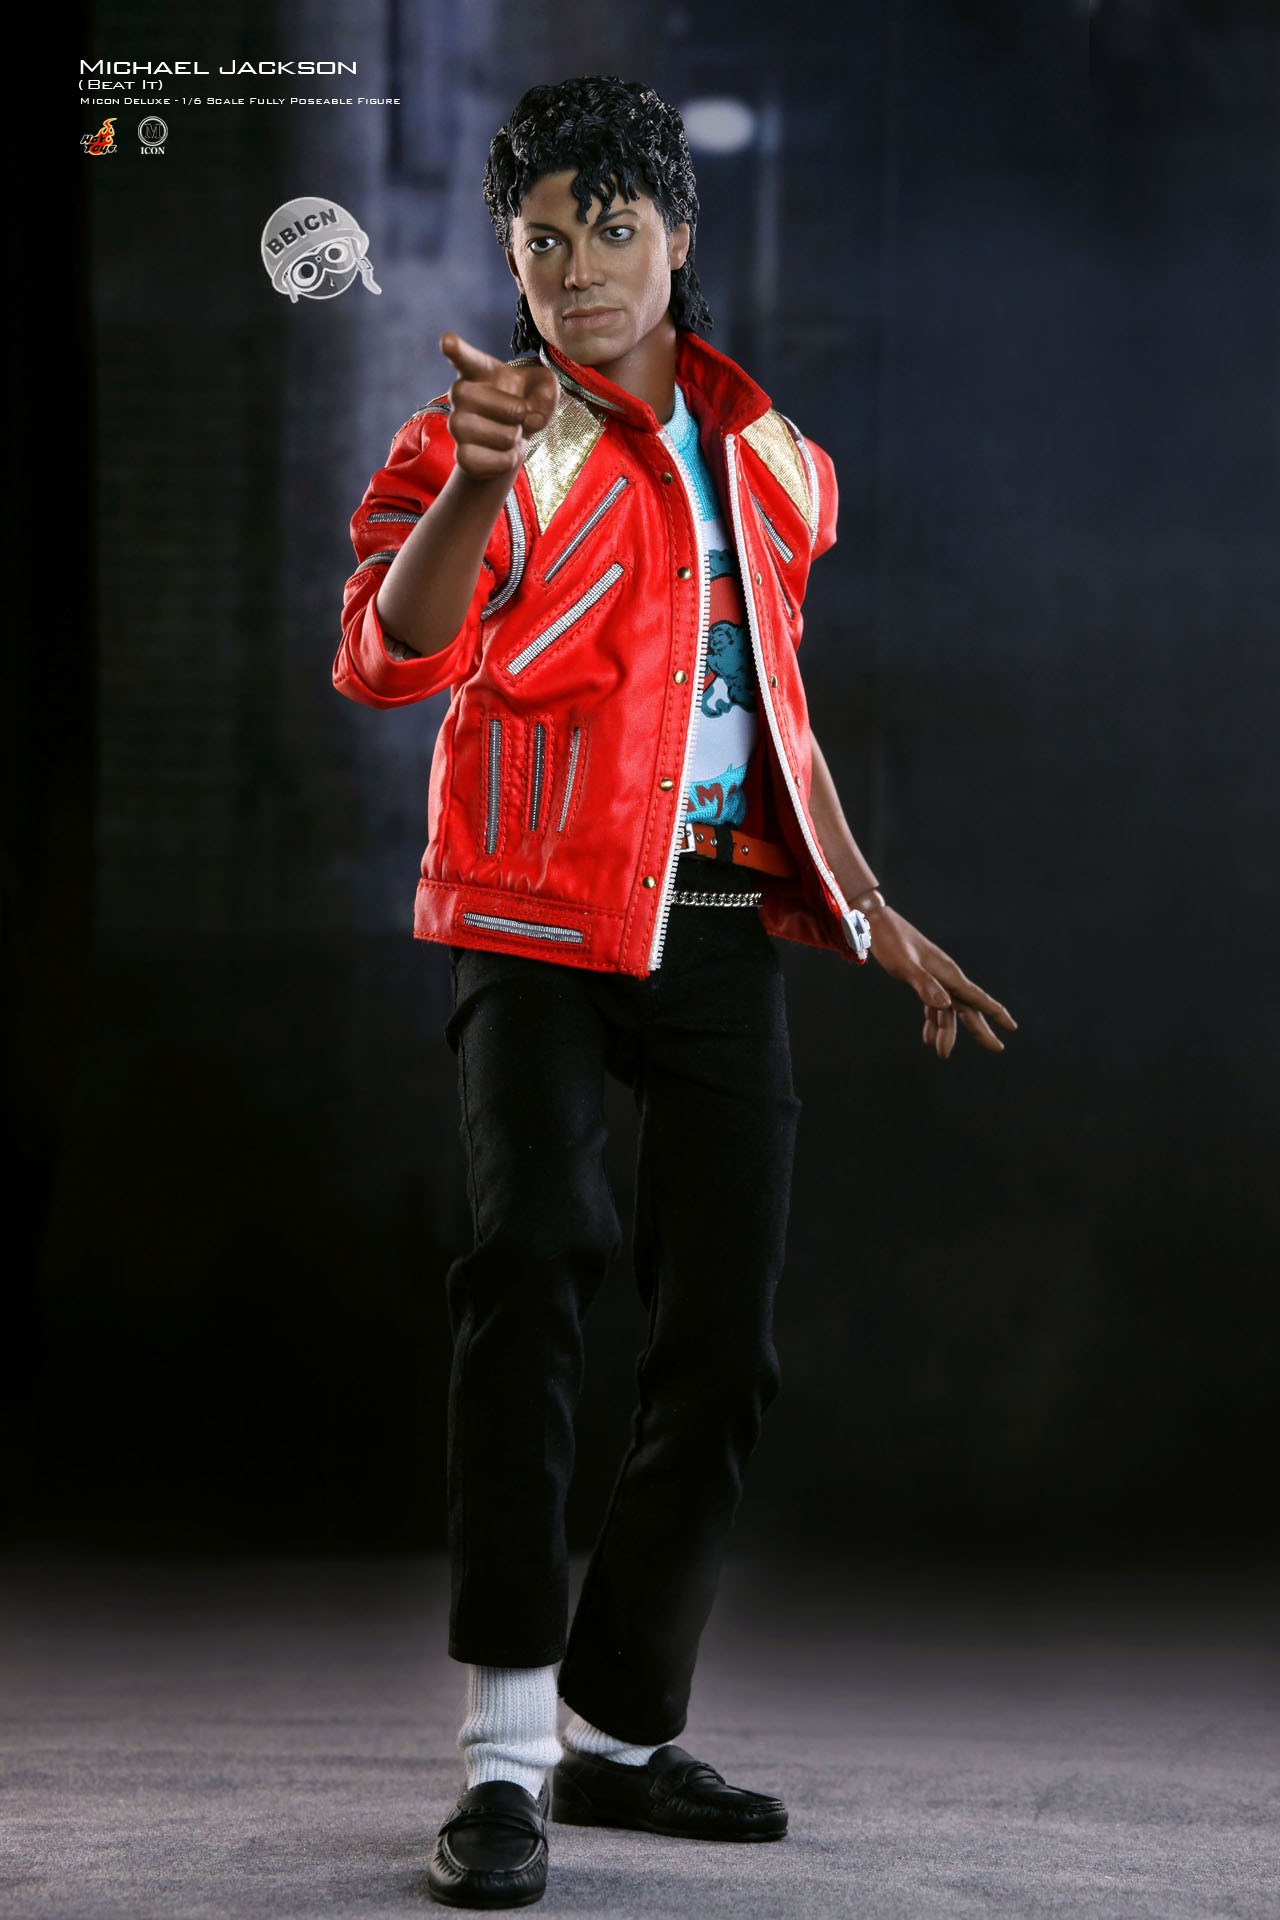 [NUOVE FOTO] Nuova Action Figure di Beat It - Pagina 2 0942083syjyait2ry6asea